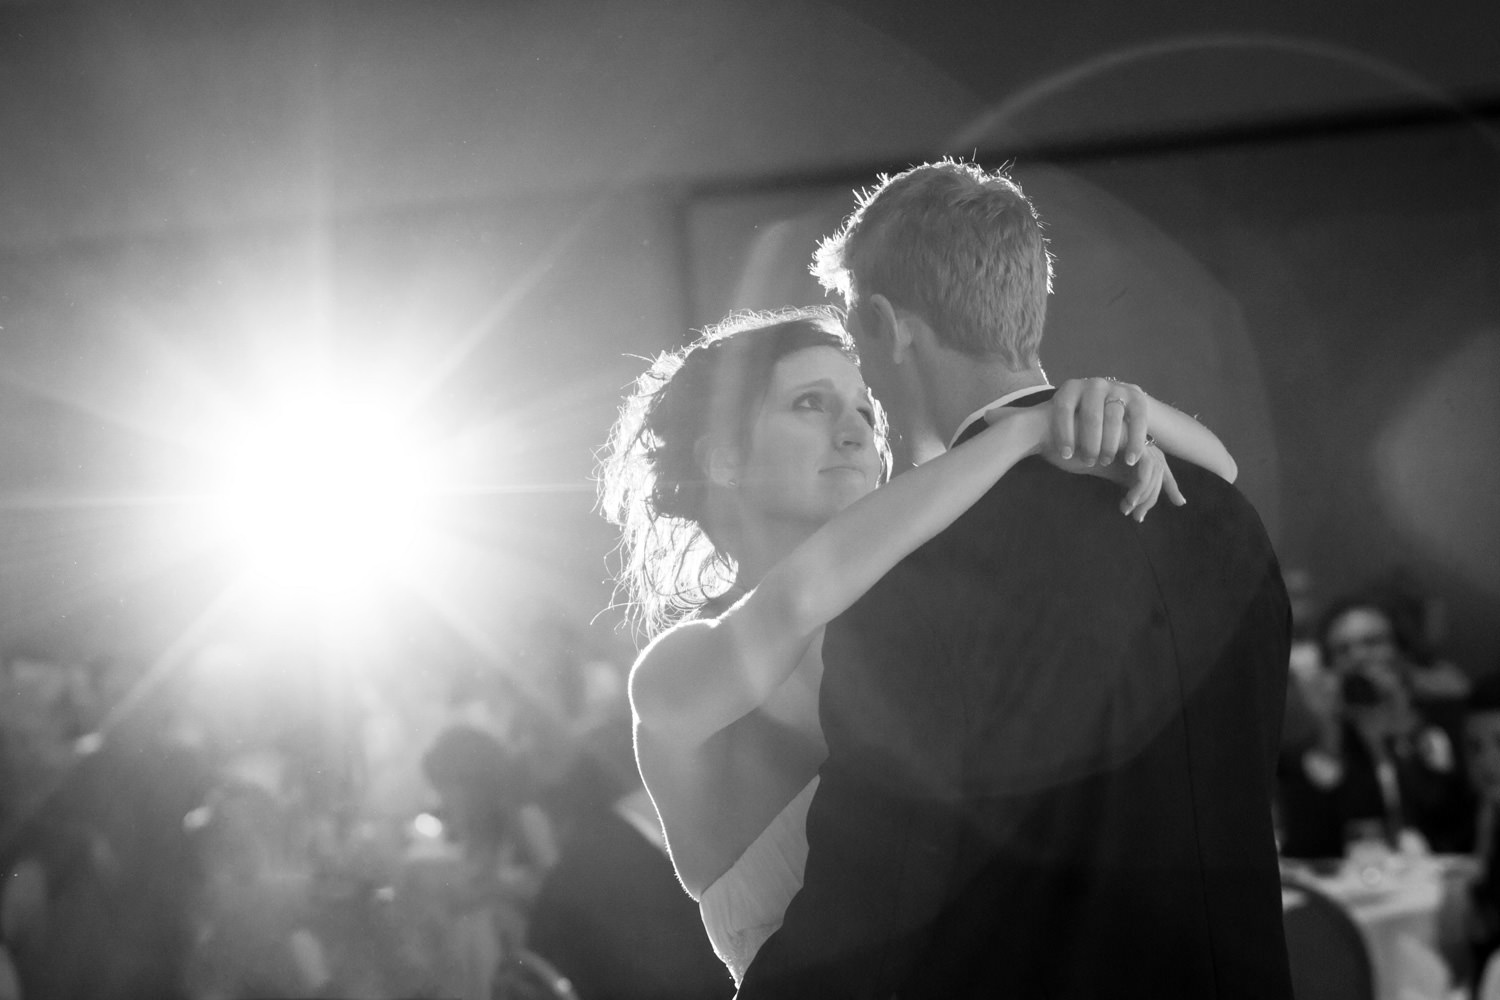 arvada-center-wedding-photographer-tomKphoto-142.jpg